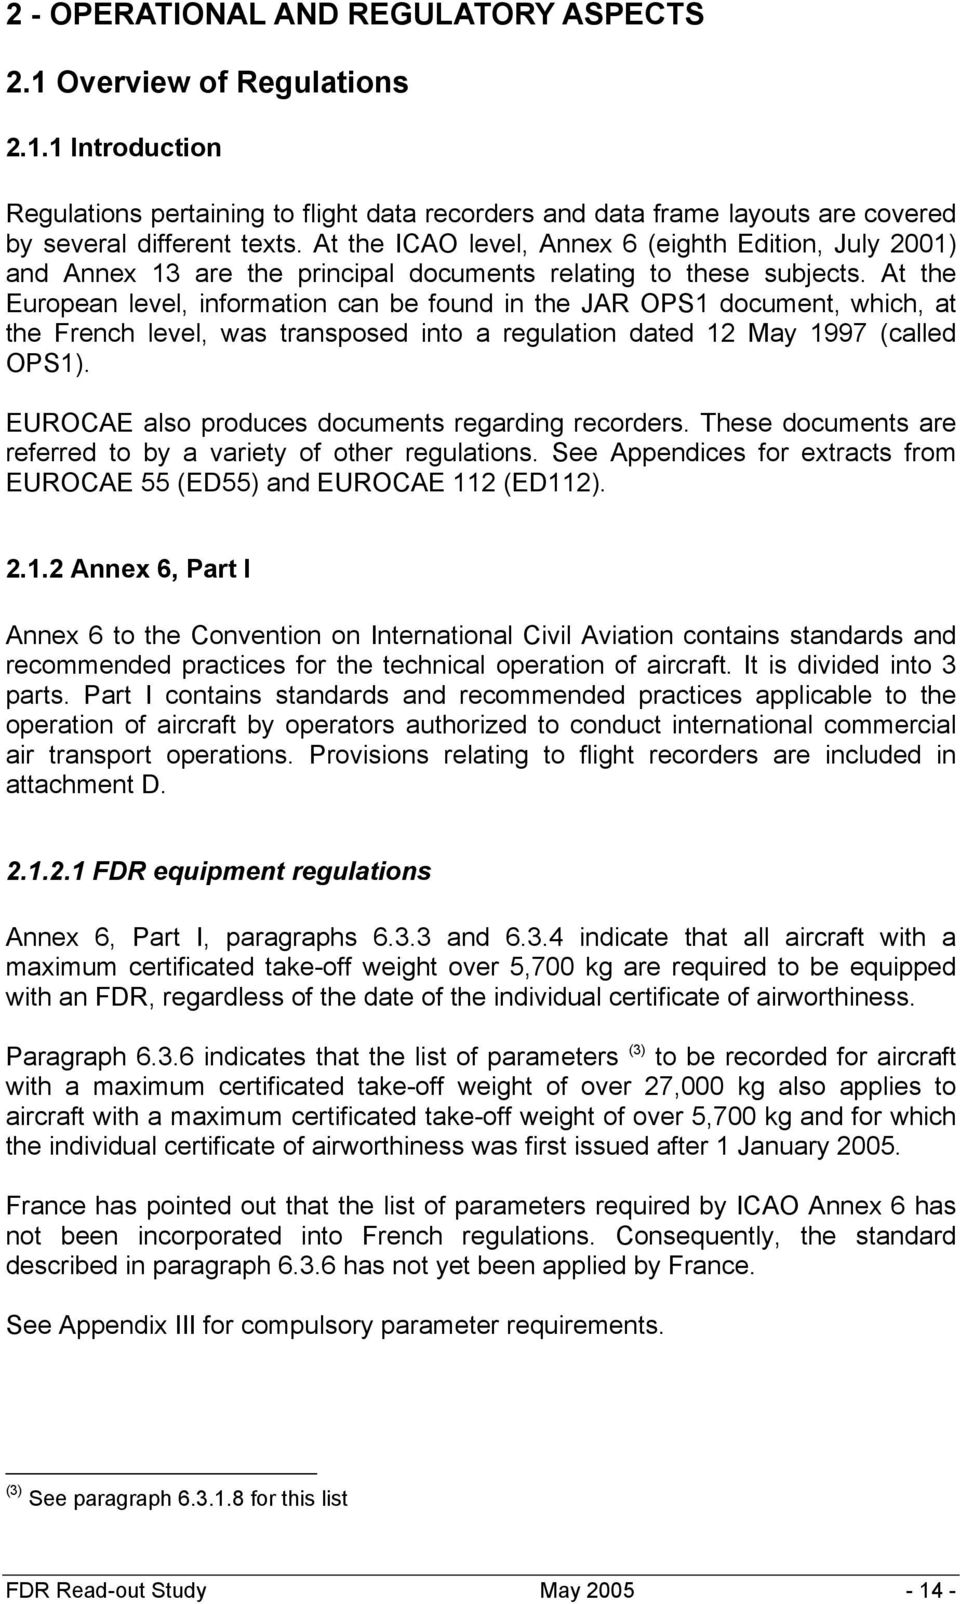 Flight Data Recorder Read-Out. Technical and Regulatory Aspects ...